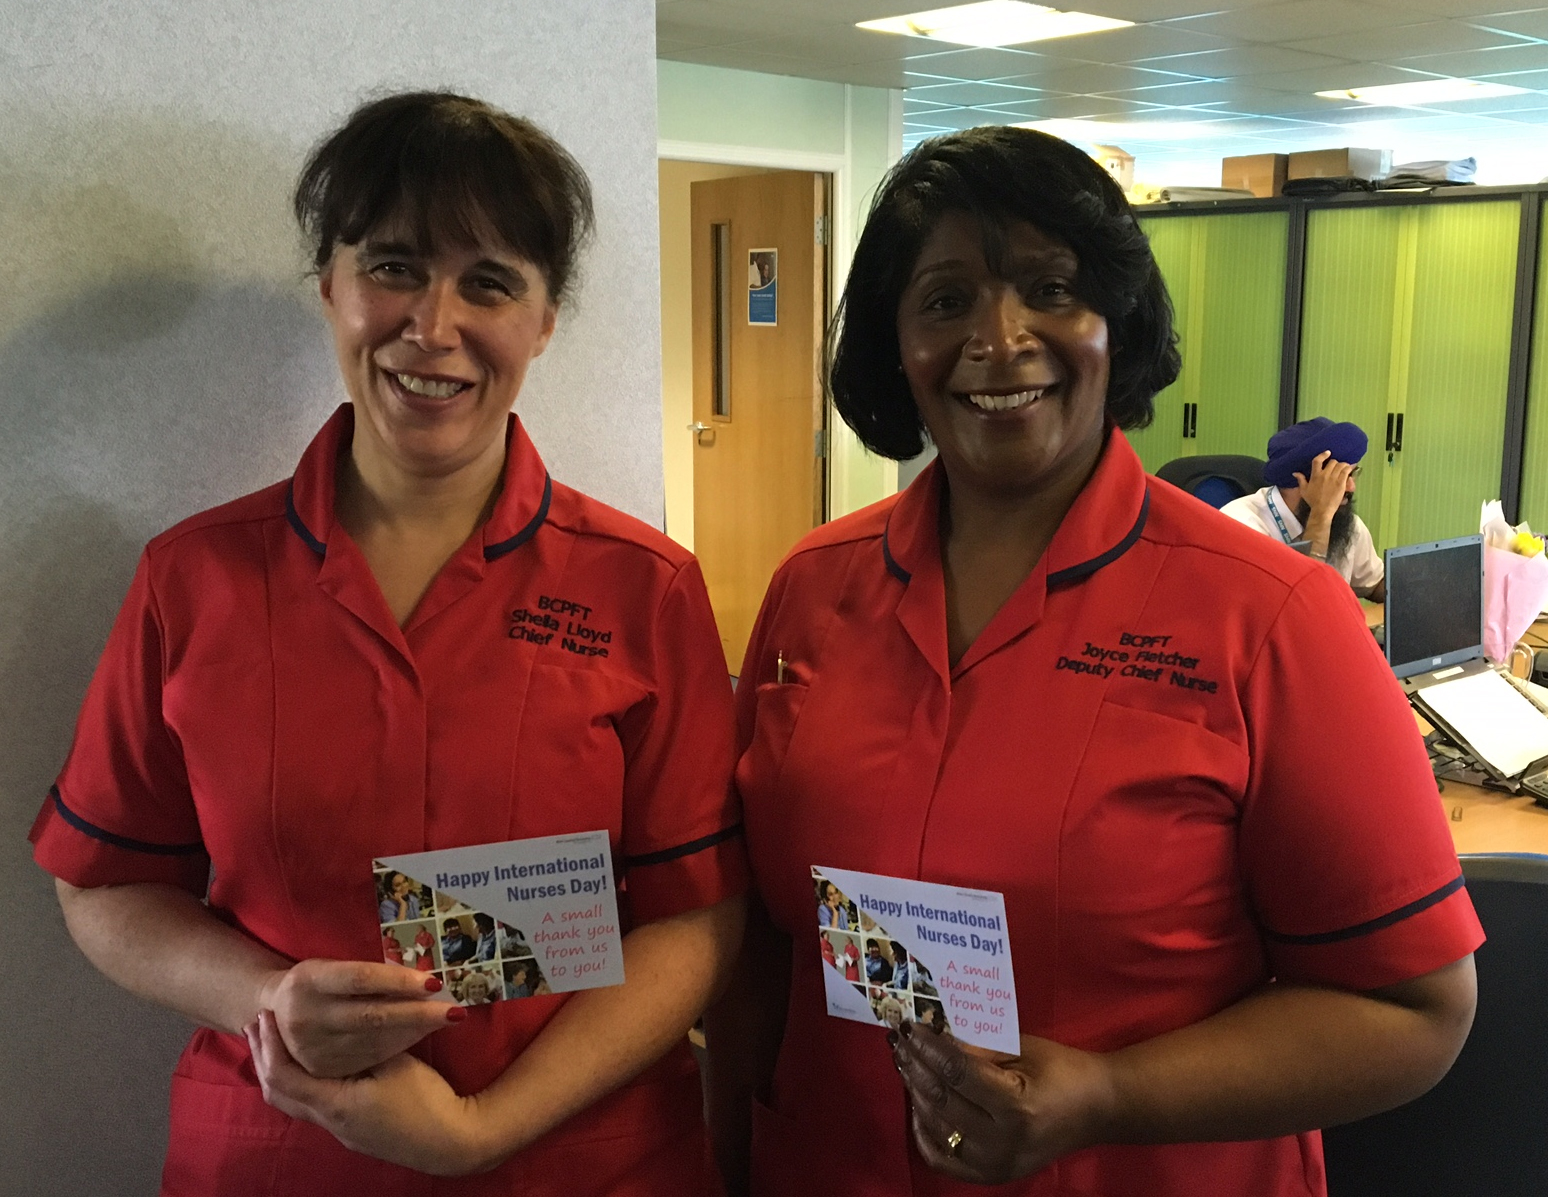 Sheila (left) and Joyce celebrating International Nurses Day 2016.